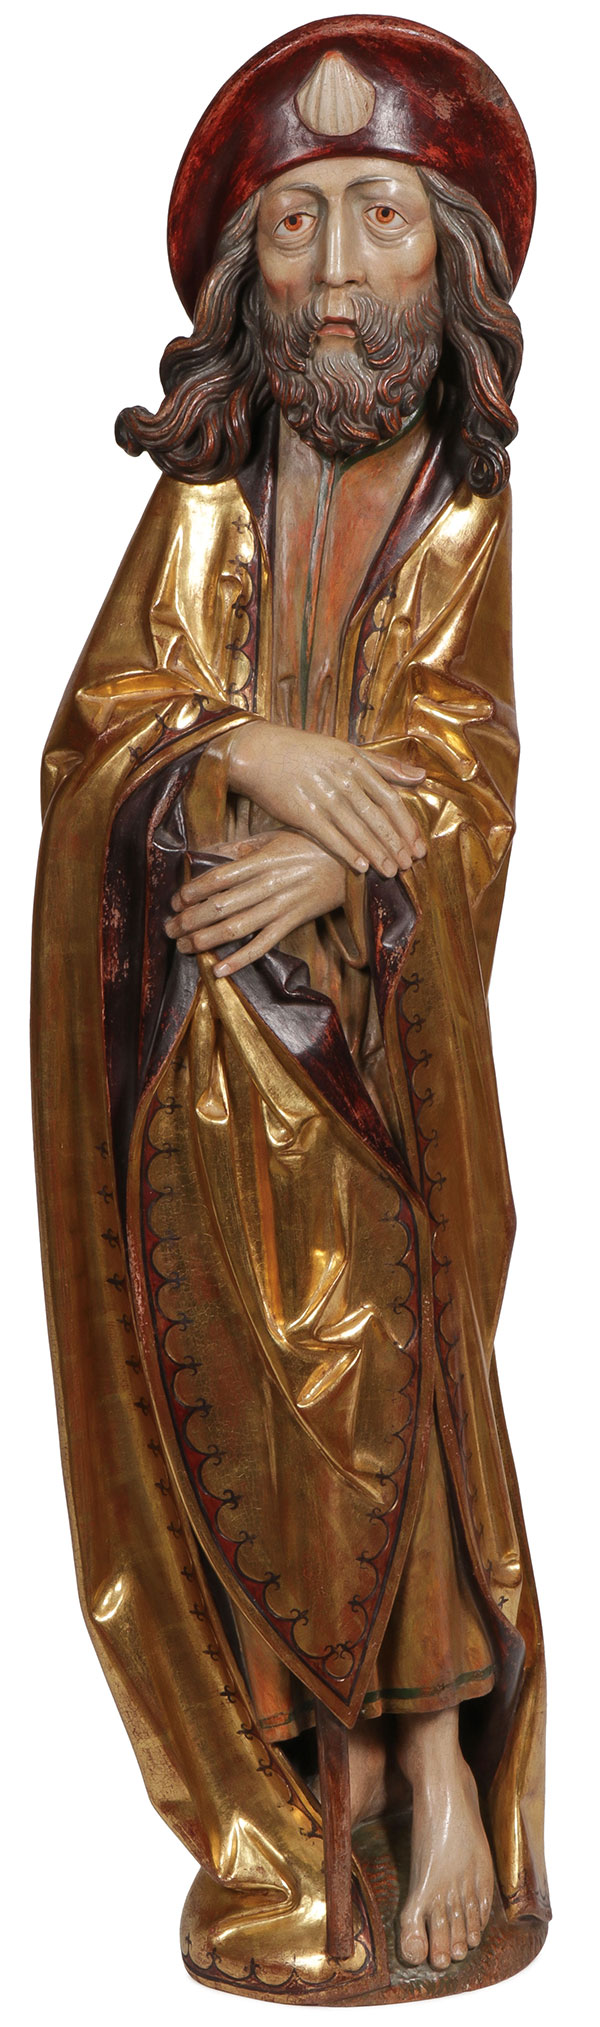 A LARGE CARVED GILT WOOD FIGURE OF ST. JAMES.